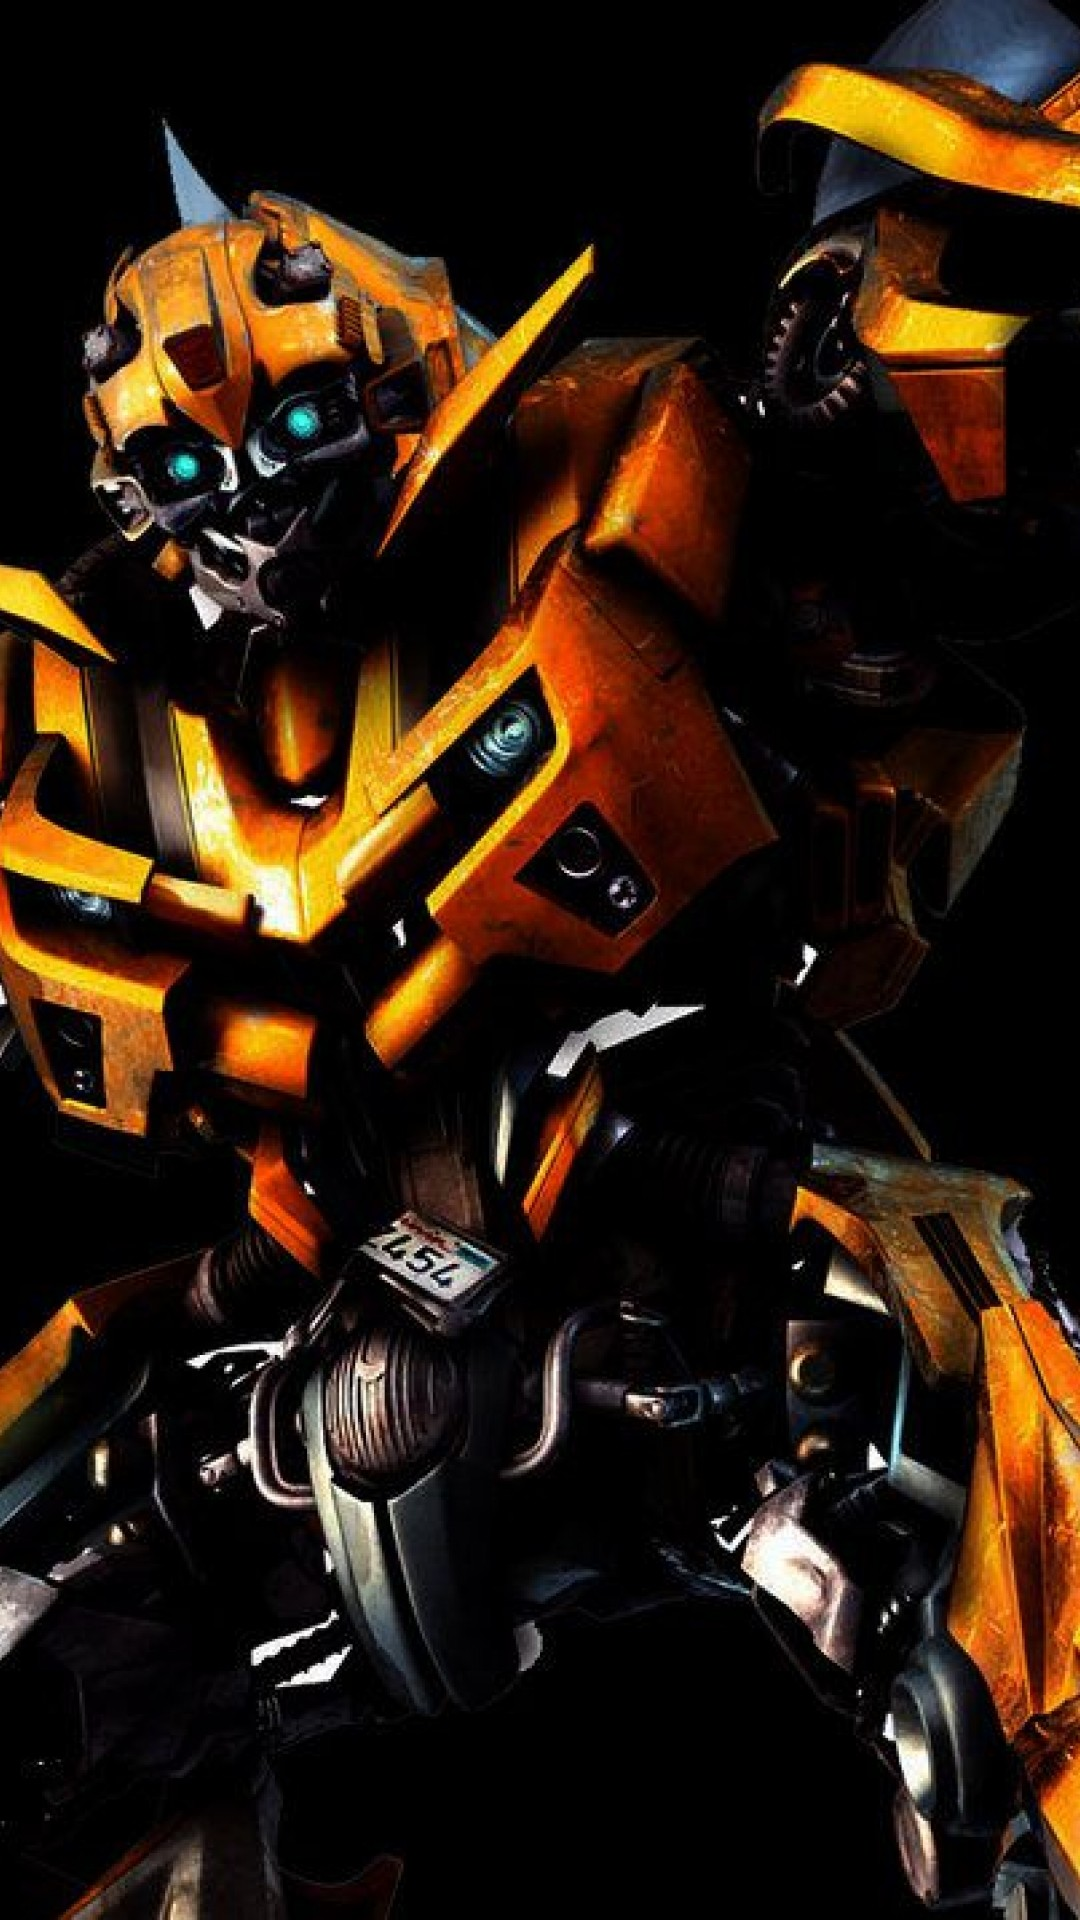 Optimus Prime The Last Knight Hd Wallpaper Bumblebee Wallpaper 67 Images